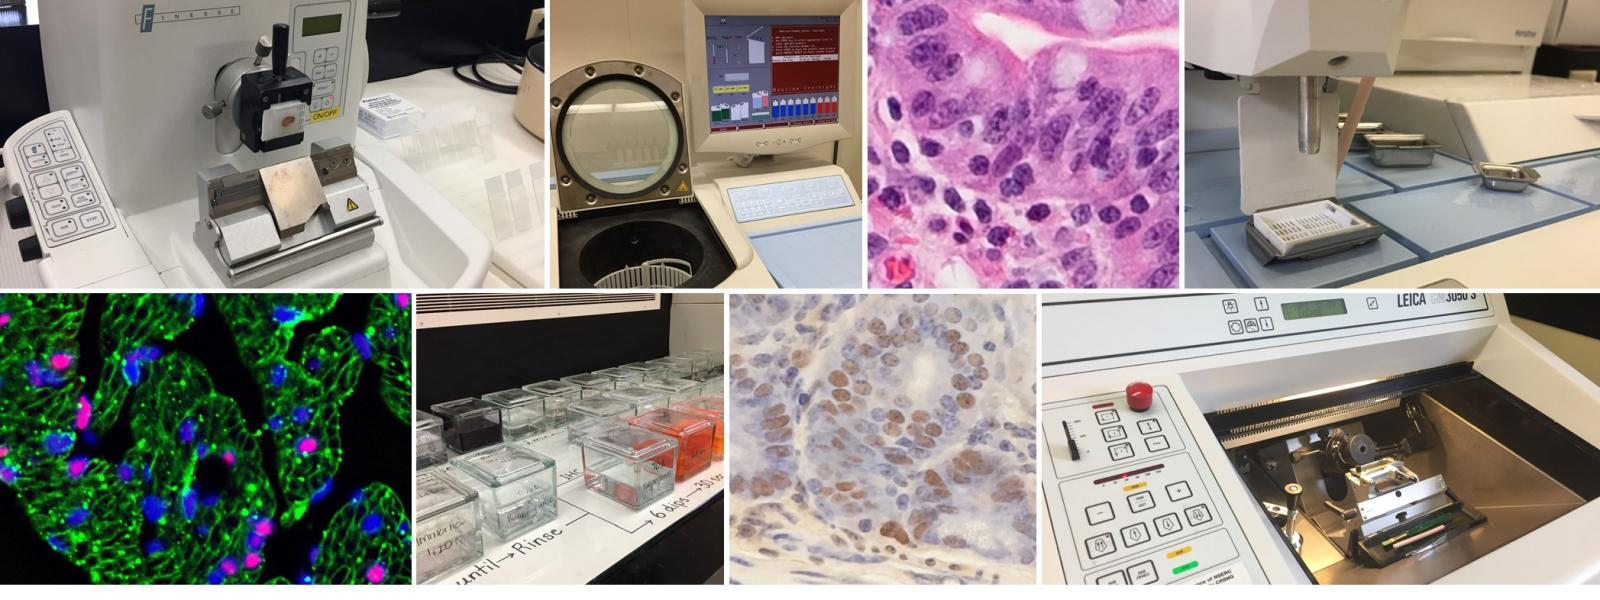 https://ovc.uoguelph.ca/biomedical-sciences/